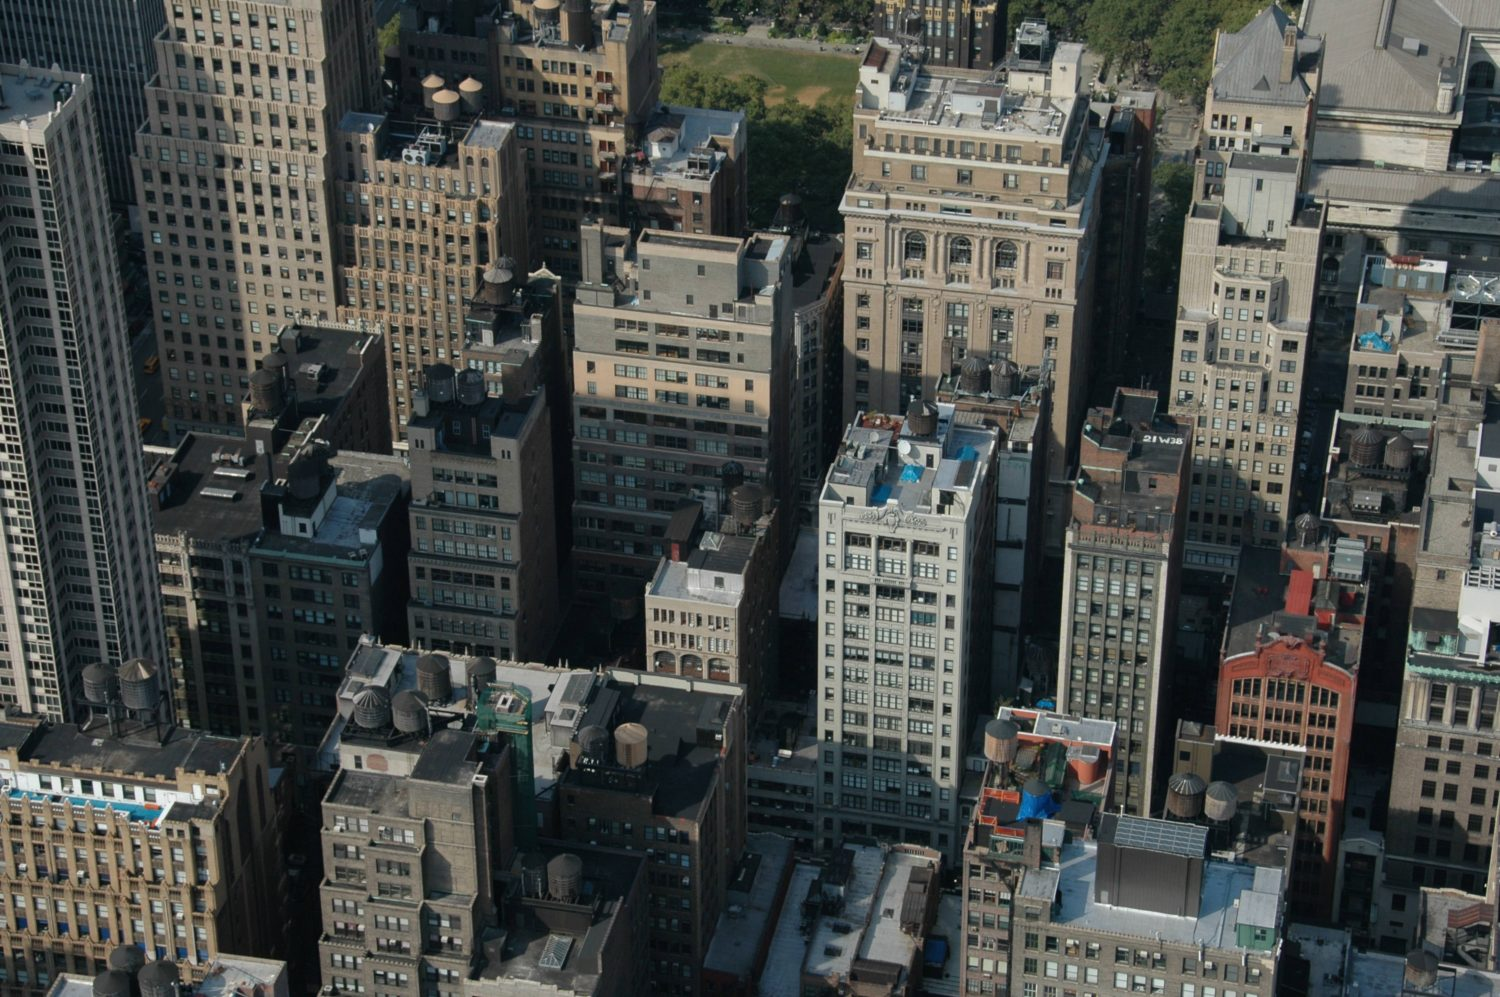 New York City Buildings Seen from the Top